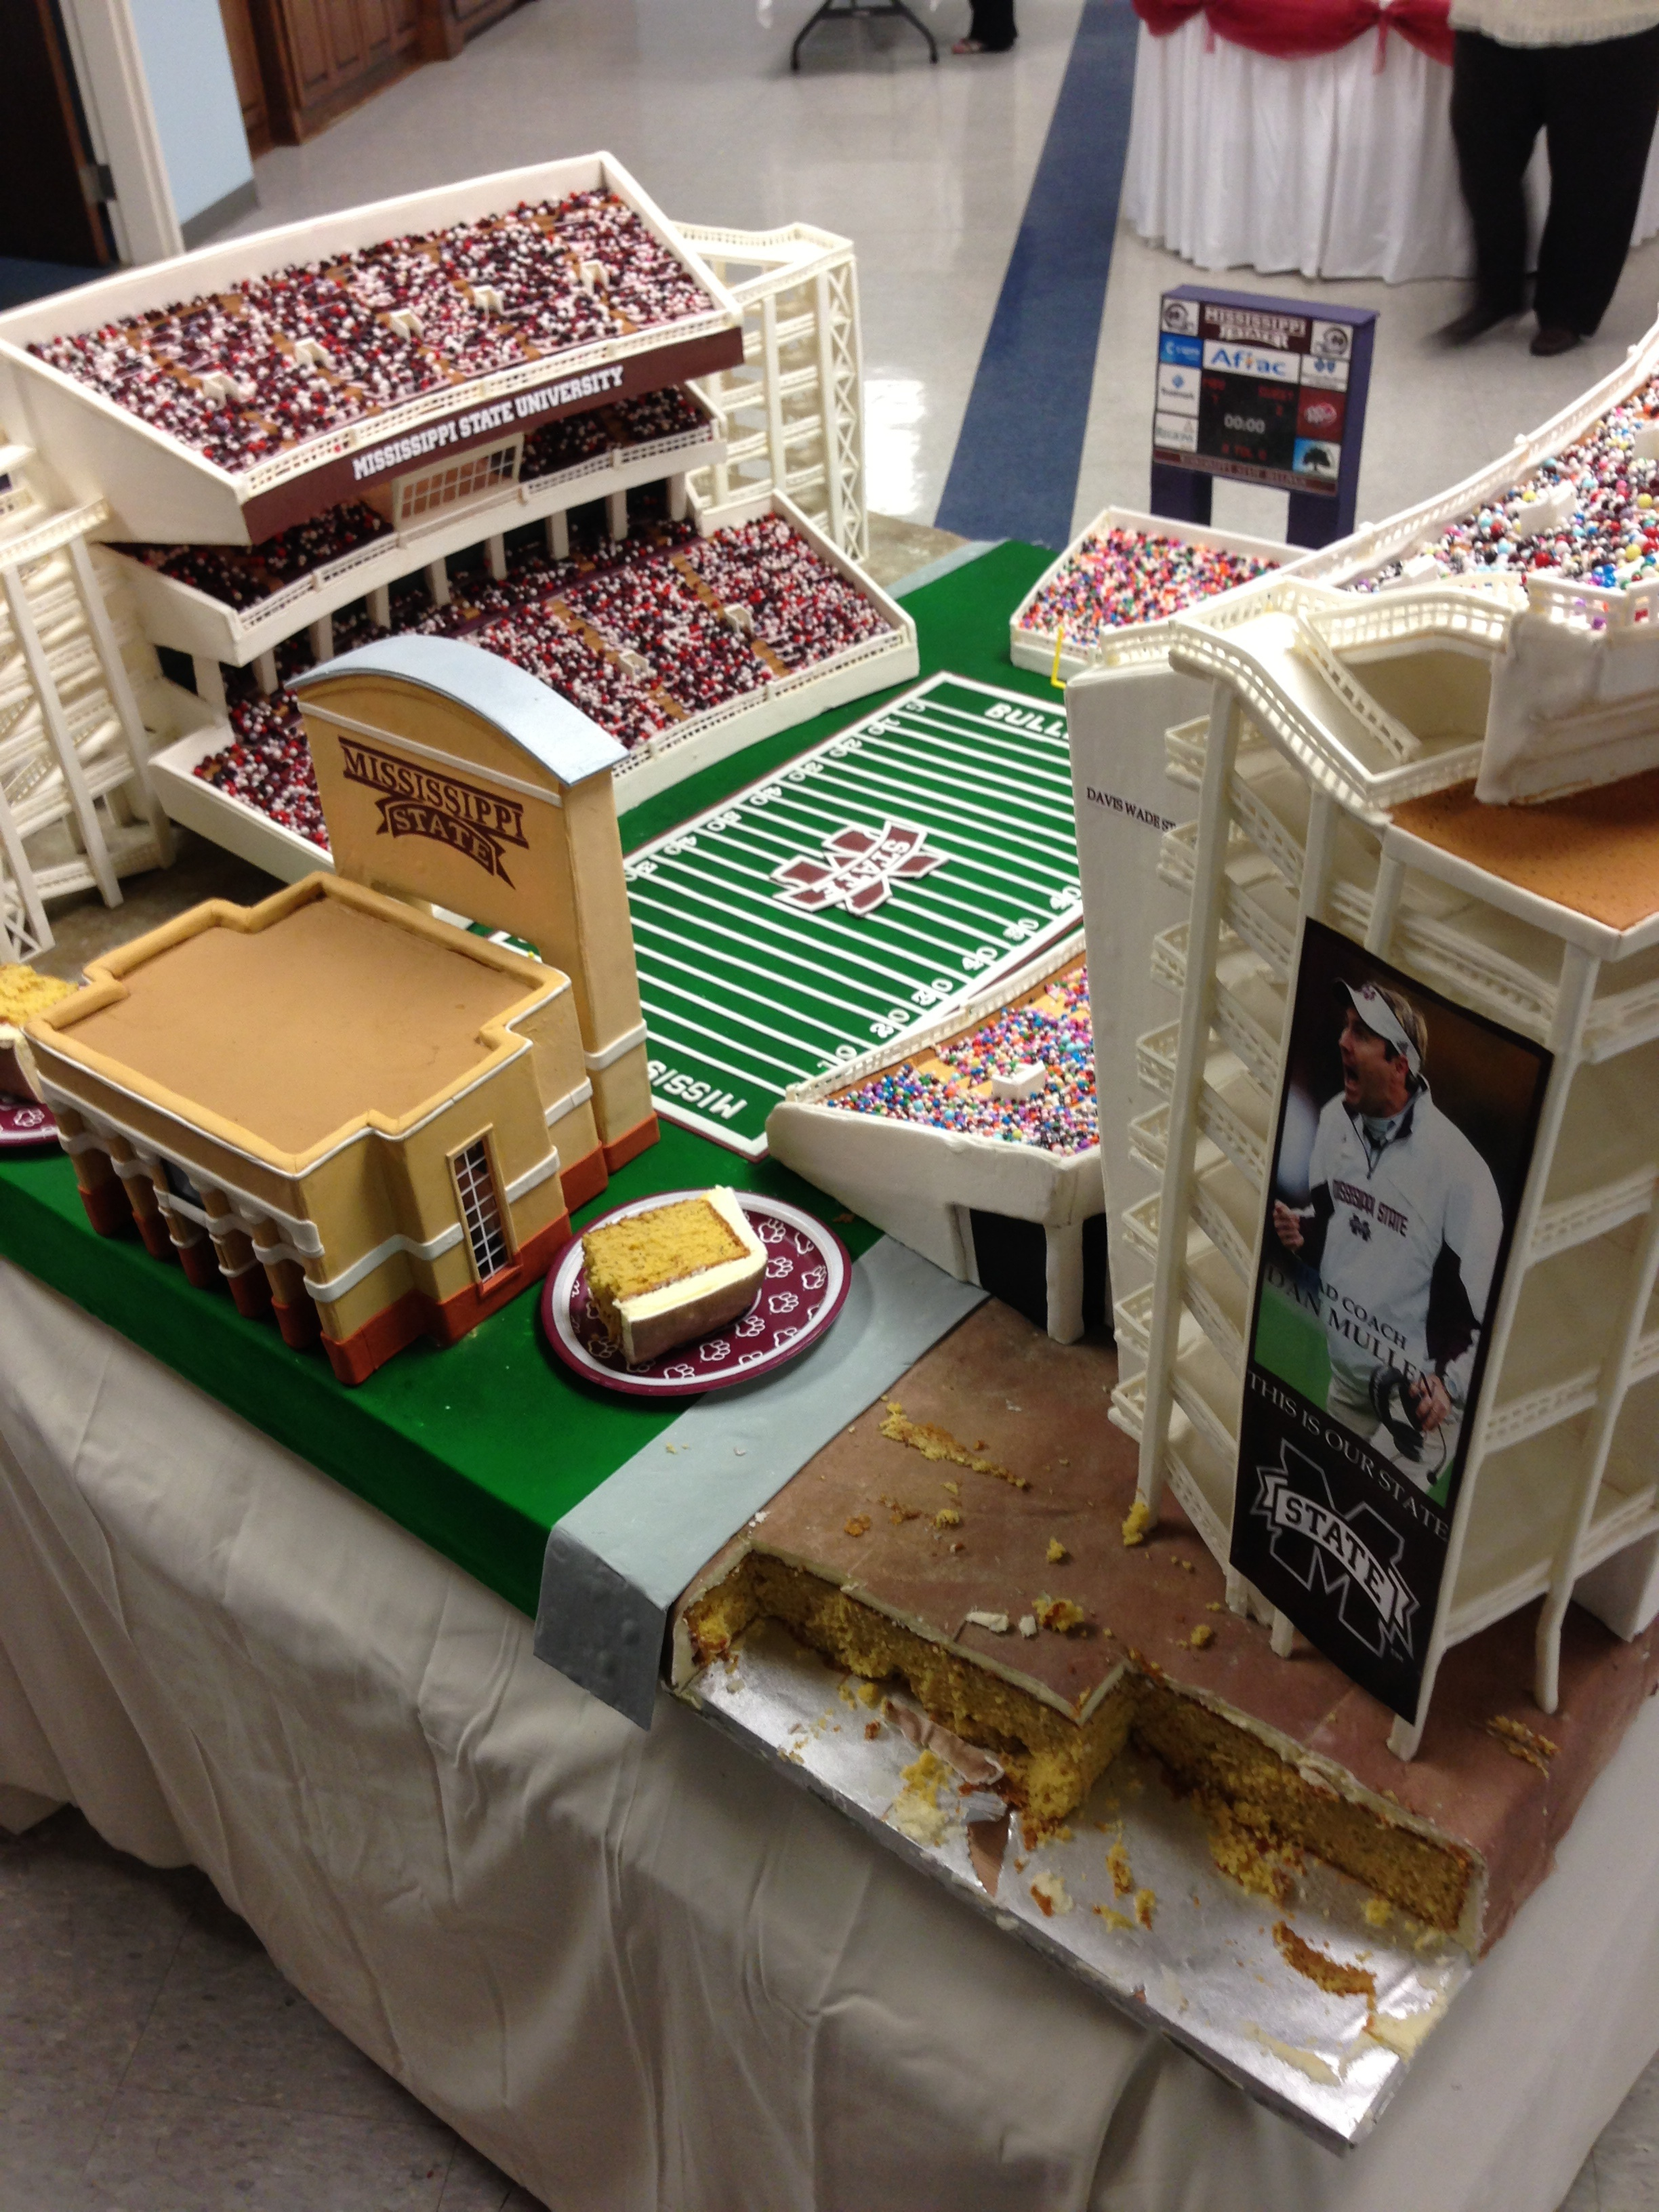 groom's cake for sports fans